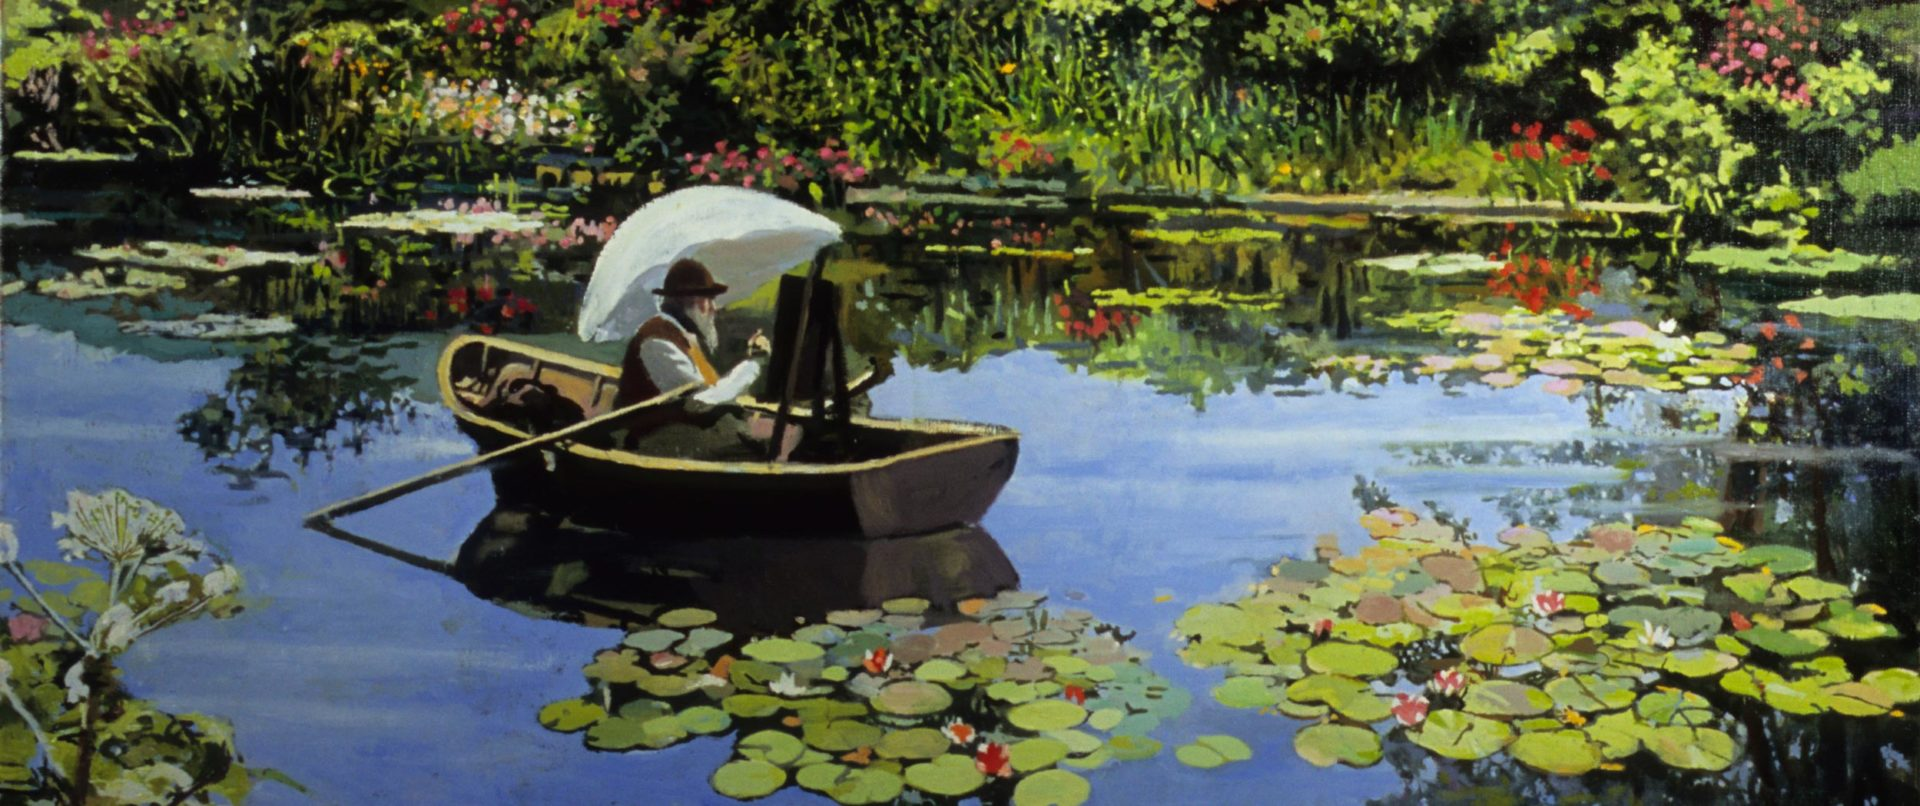 monet-garden-tour-giverny-for-families